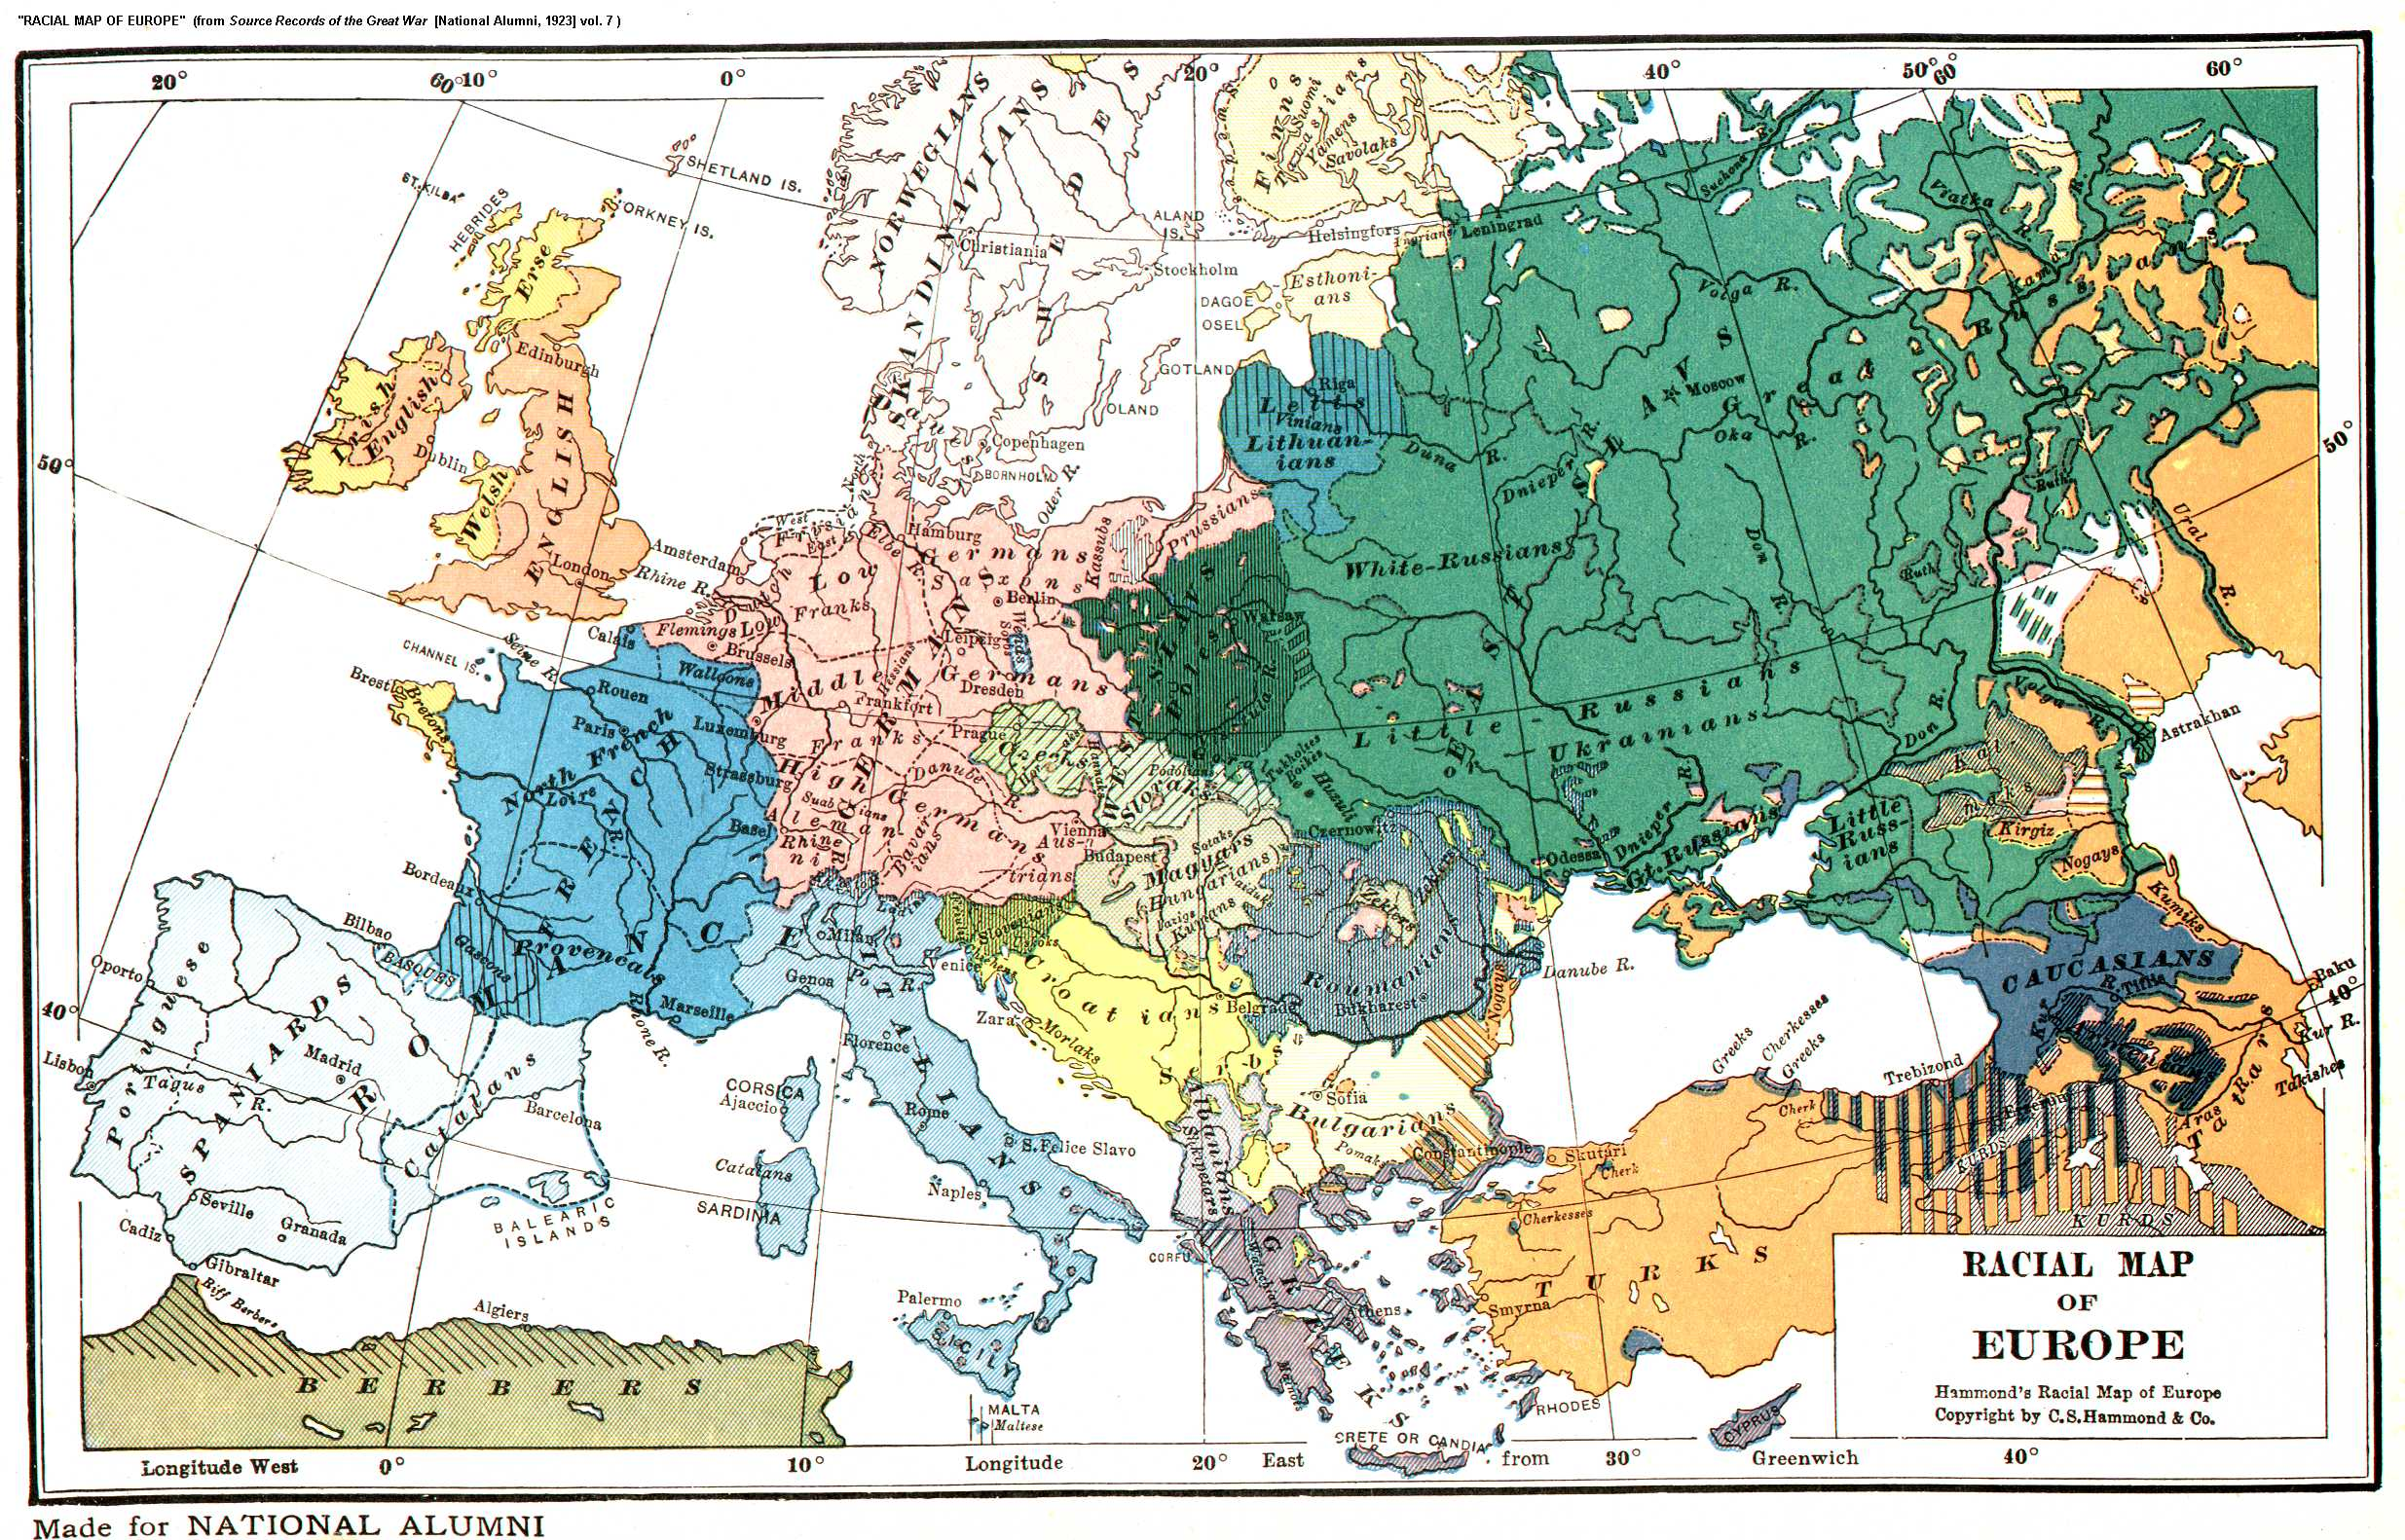 Racial [Ethnic] Map of Europe, 1919